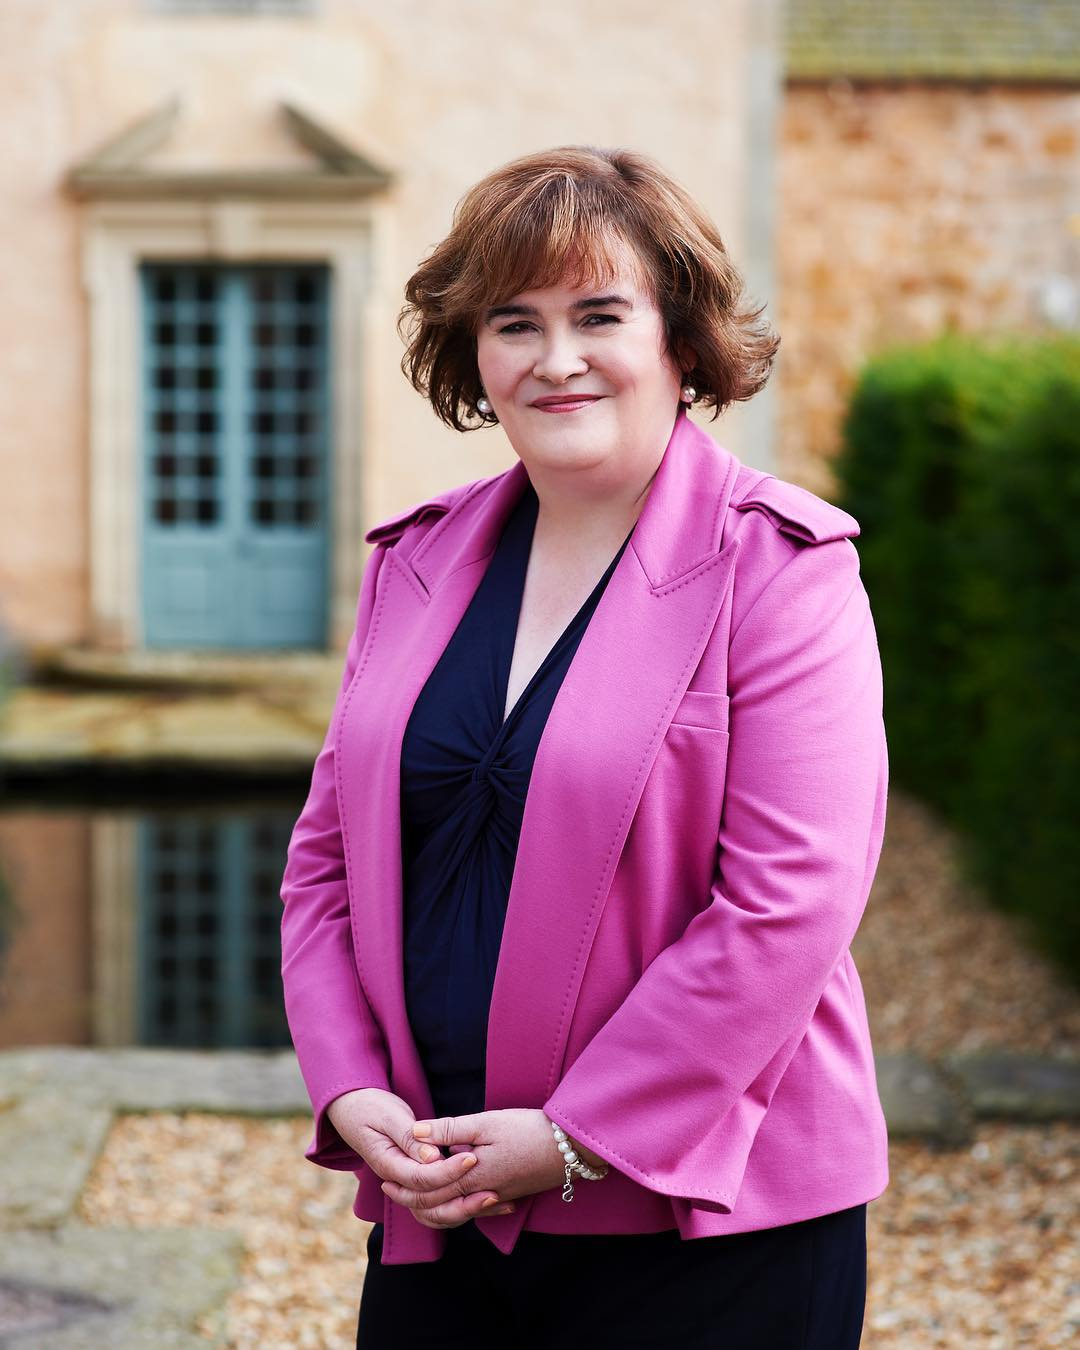 Susan Boyle wearing pink outer and a subtle smile on her face